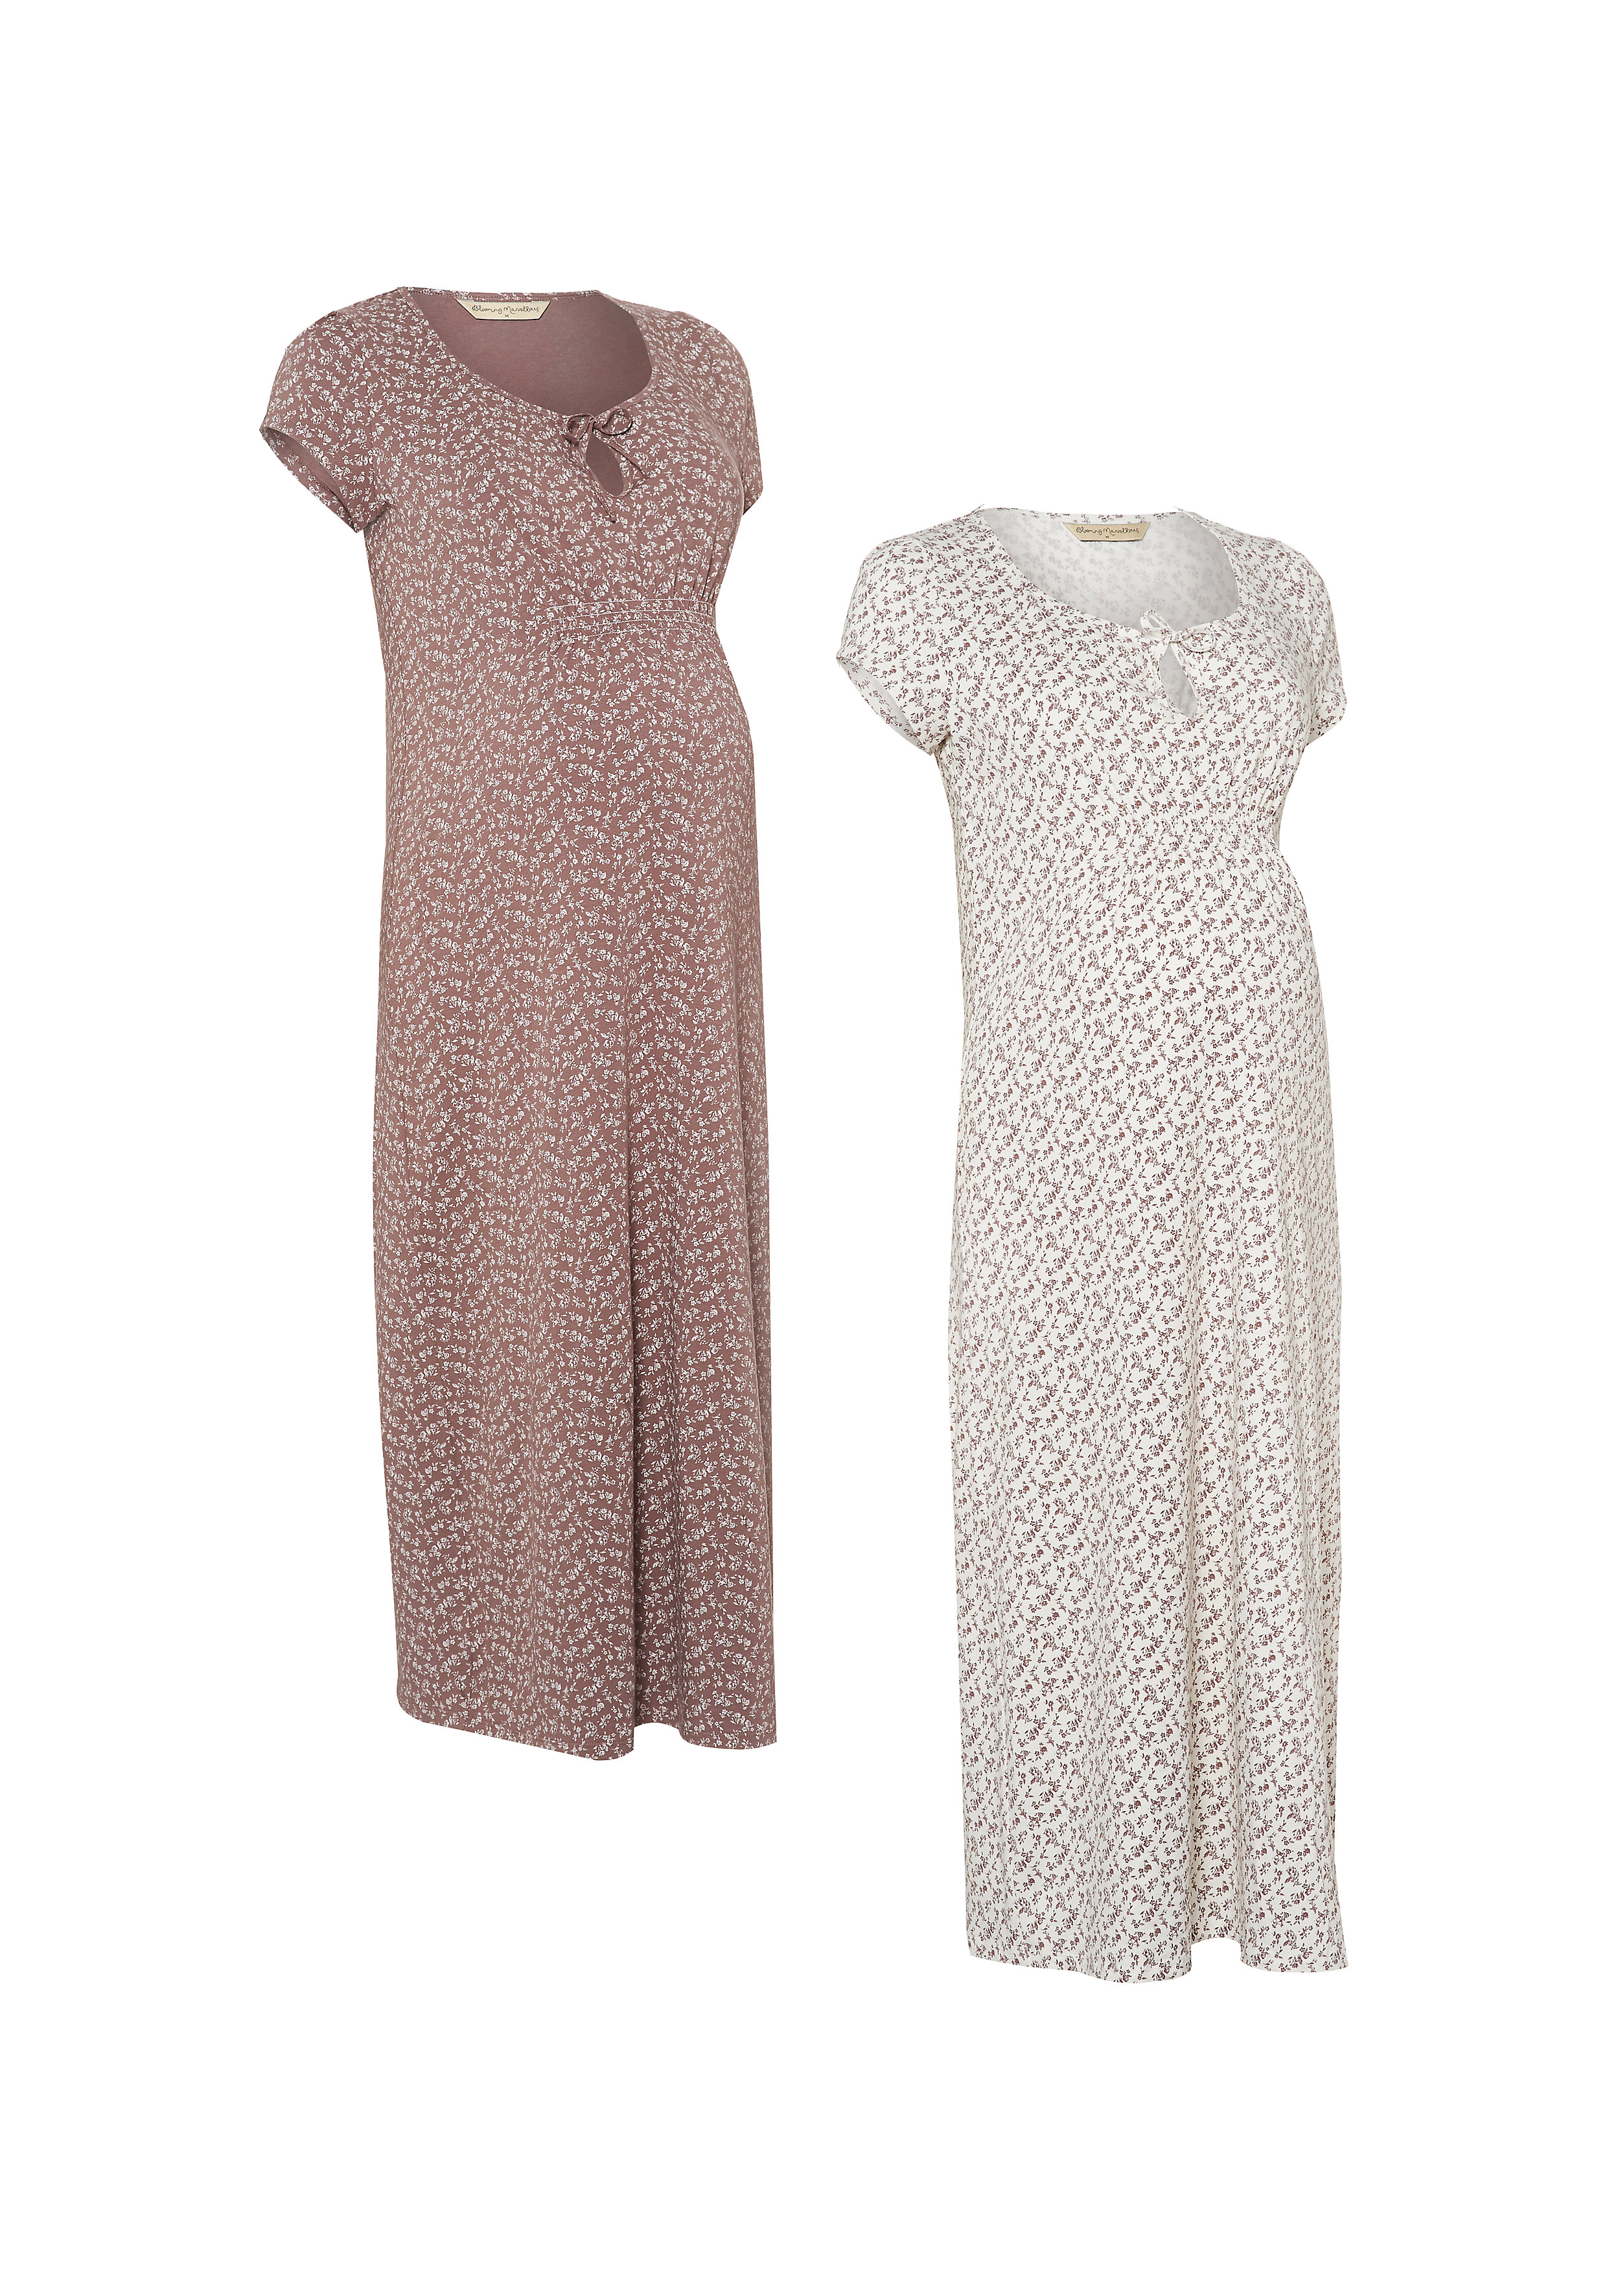 Mothercare   Women Half Sleeves Maternity Nightdress Floral Print - Pack Of 2 - Multicolor